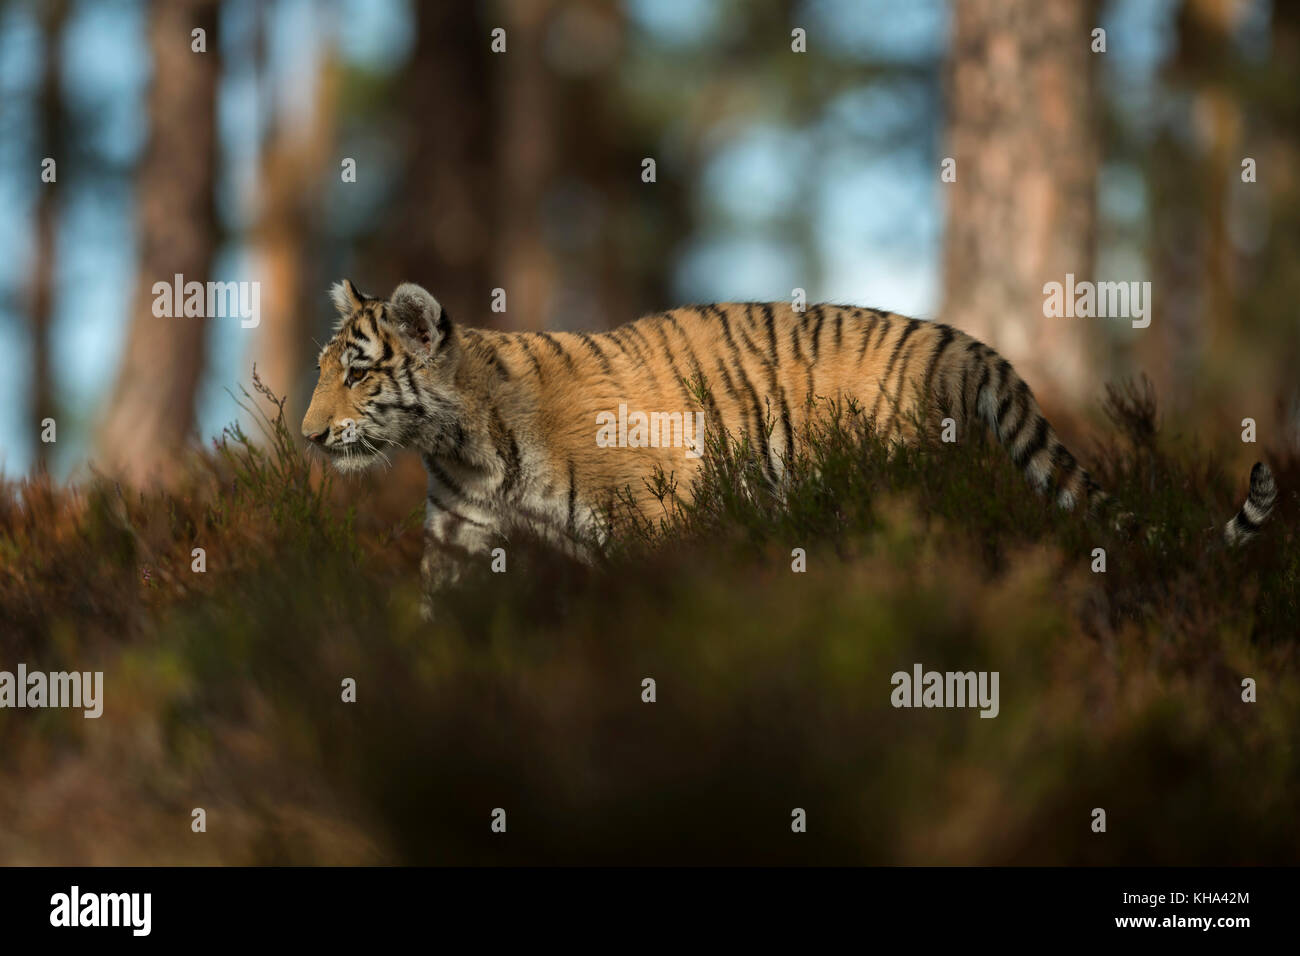 Royal Bengal Tiger ( Panthera tigris ), young animal, adolescent, sneaking, walking through the undergrowth of a - Stock Image